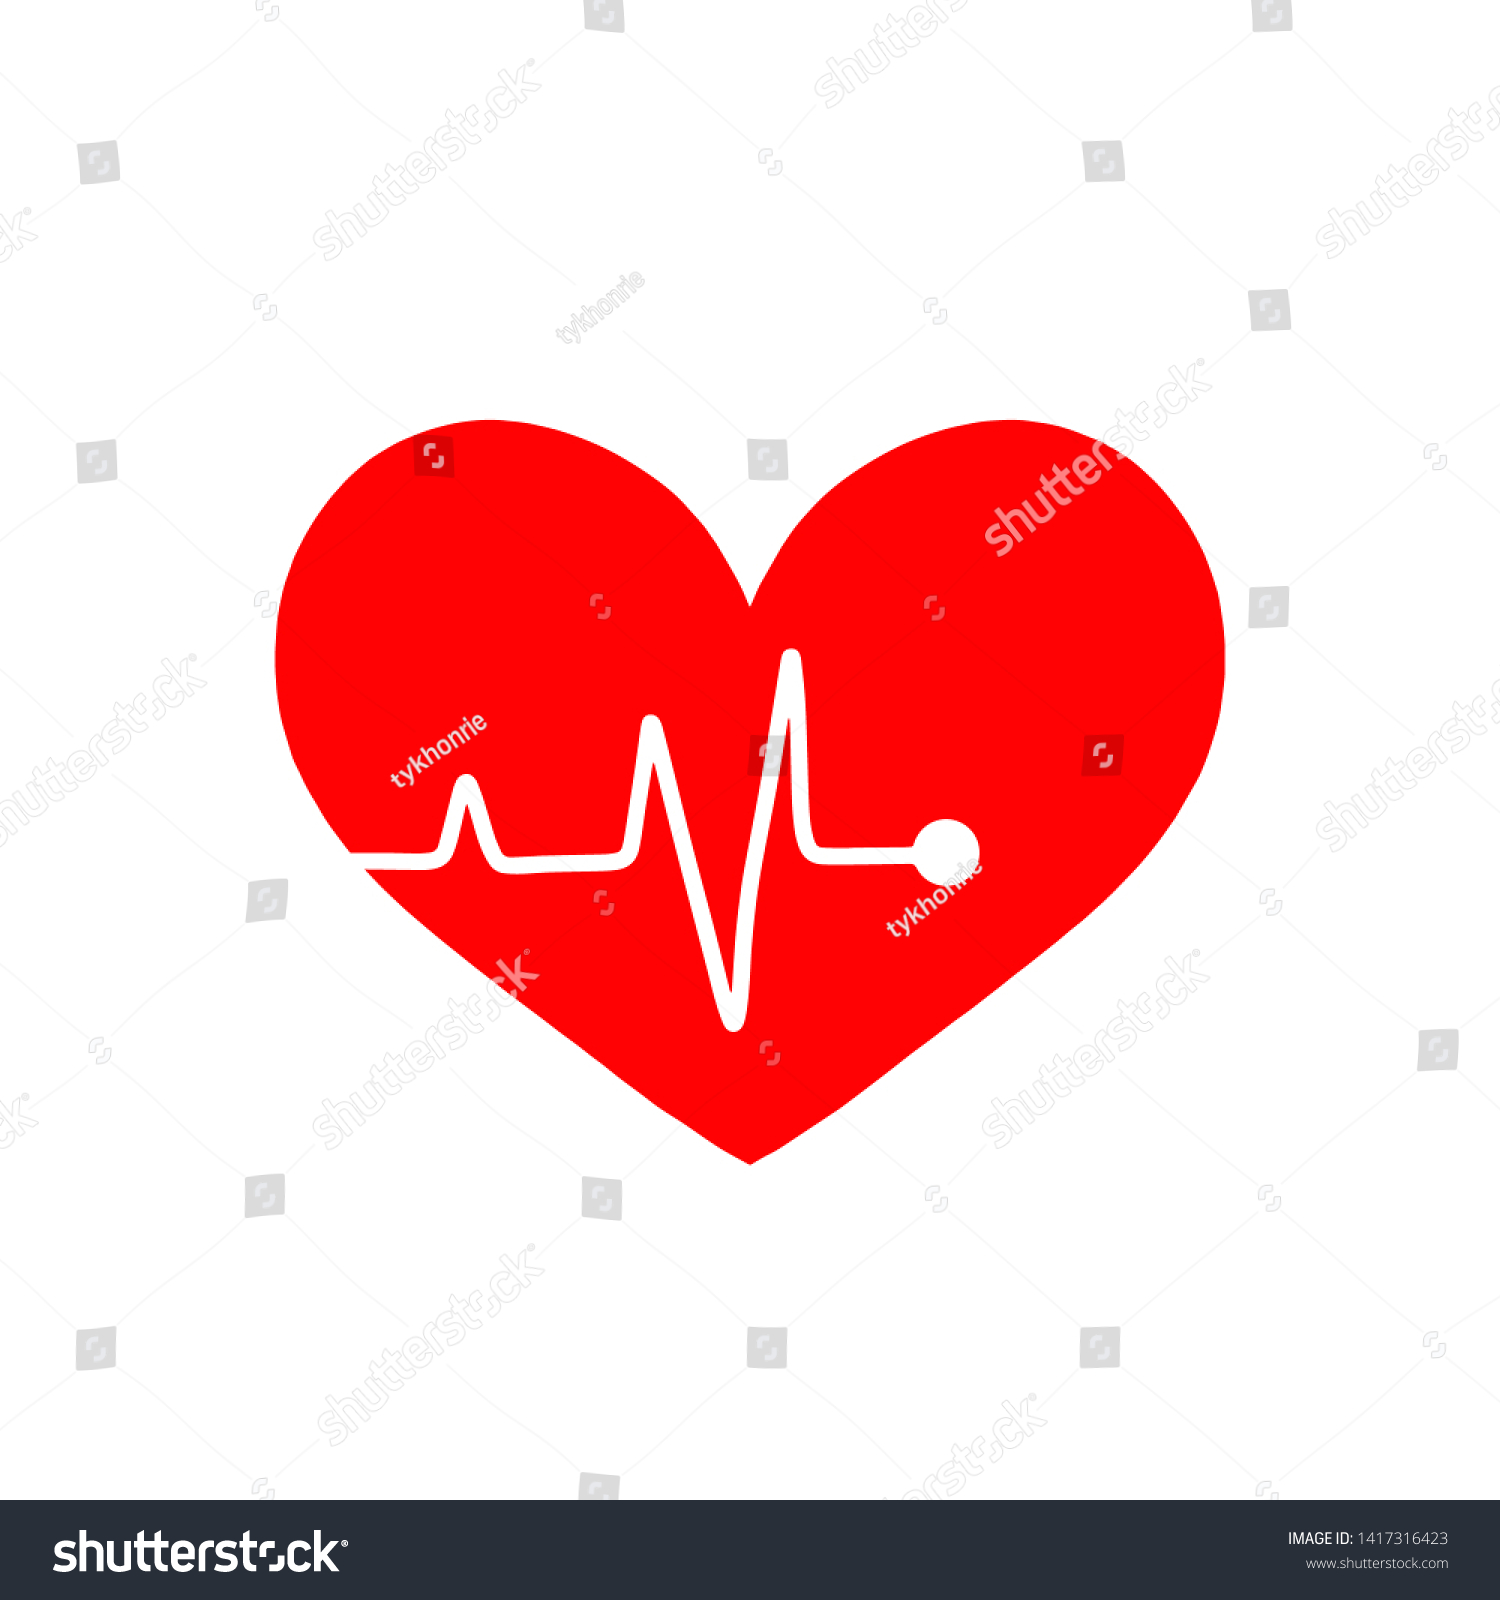 stock-photo-red-heartbeat-monitor-pulse-